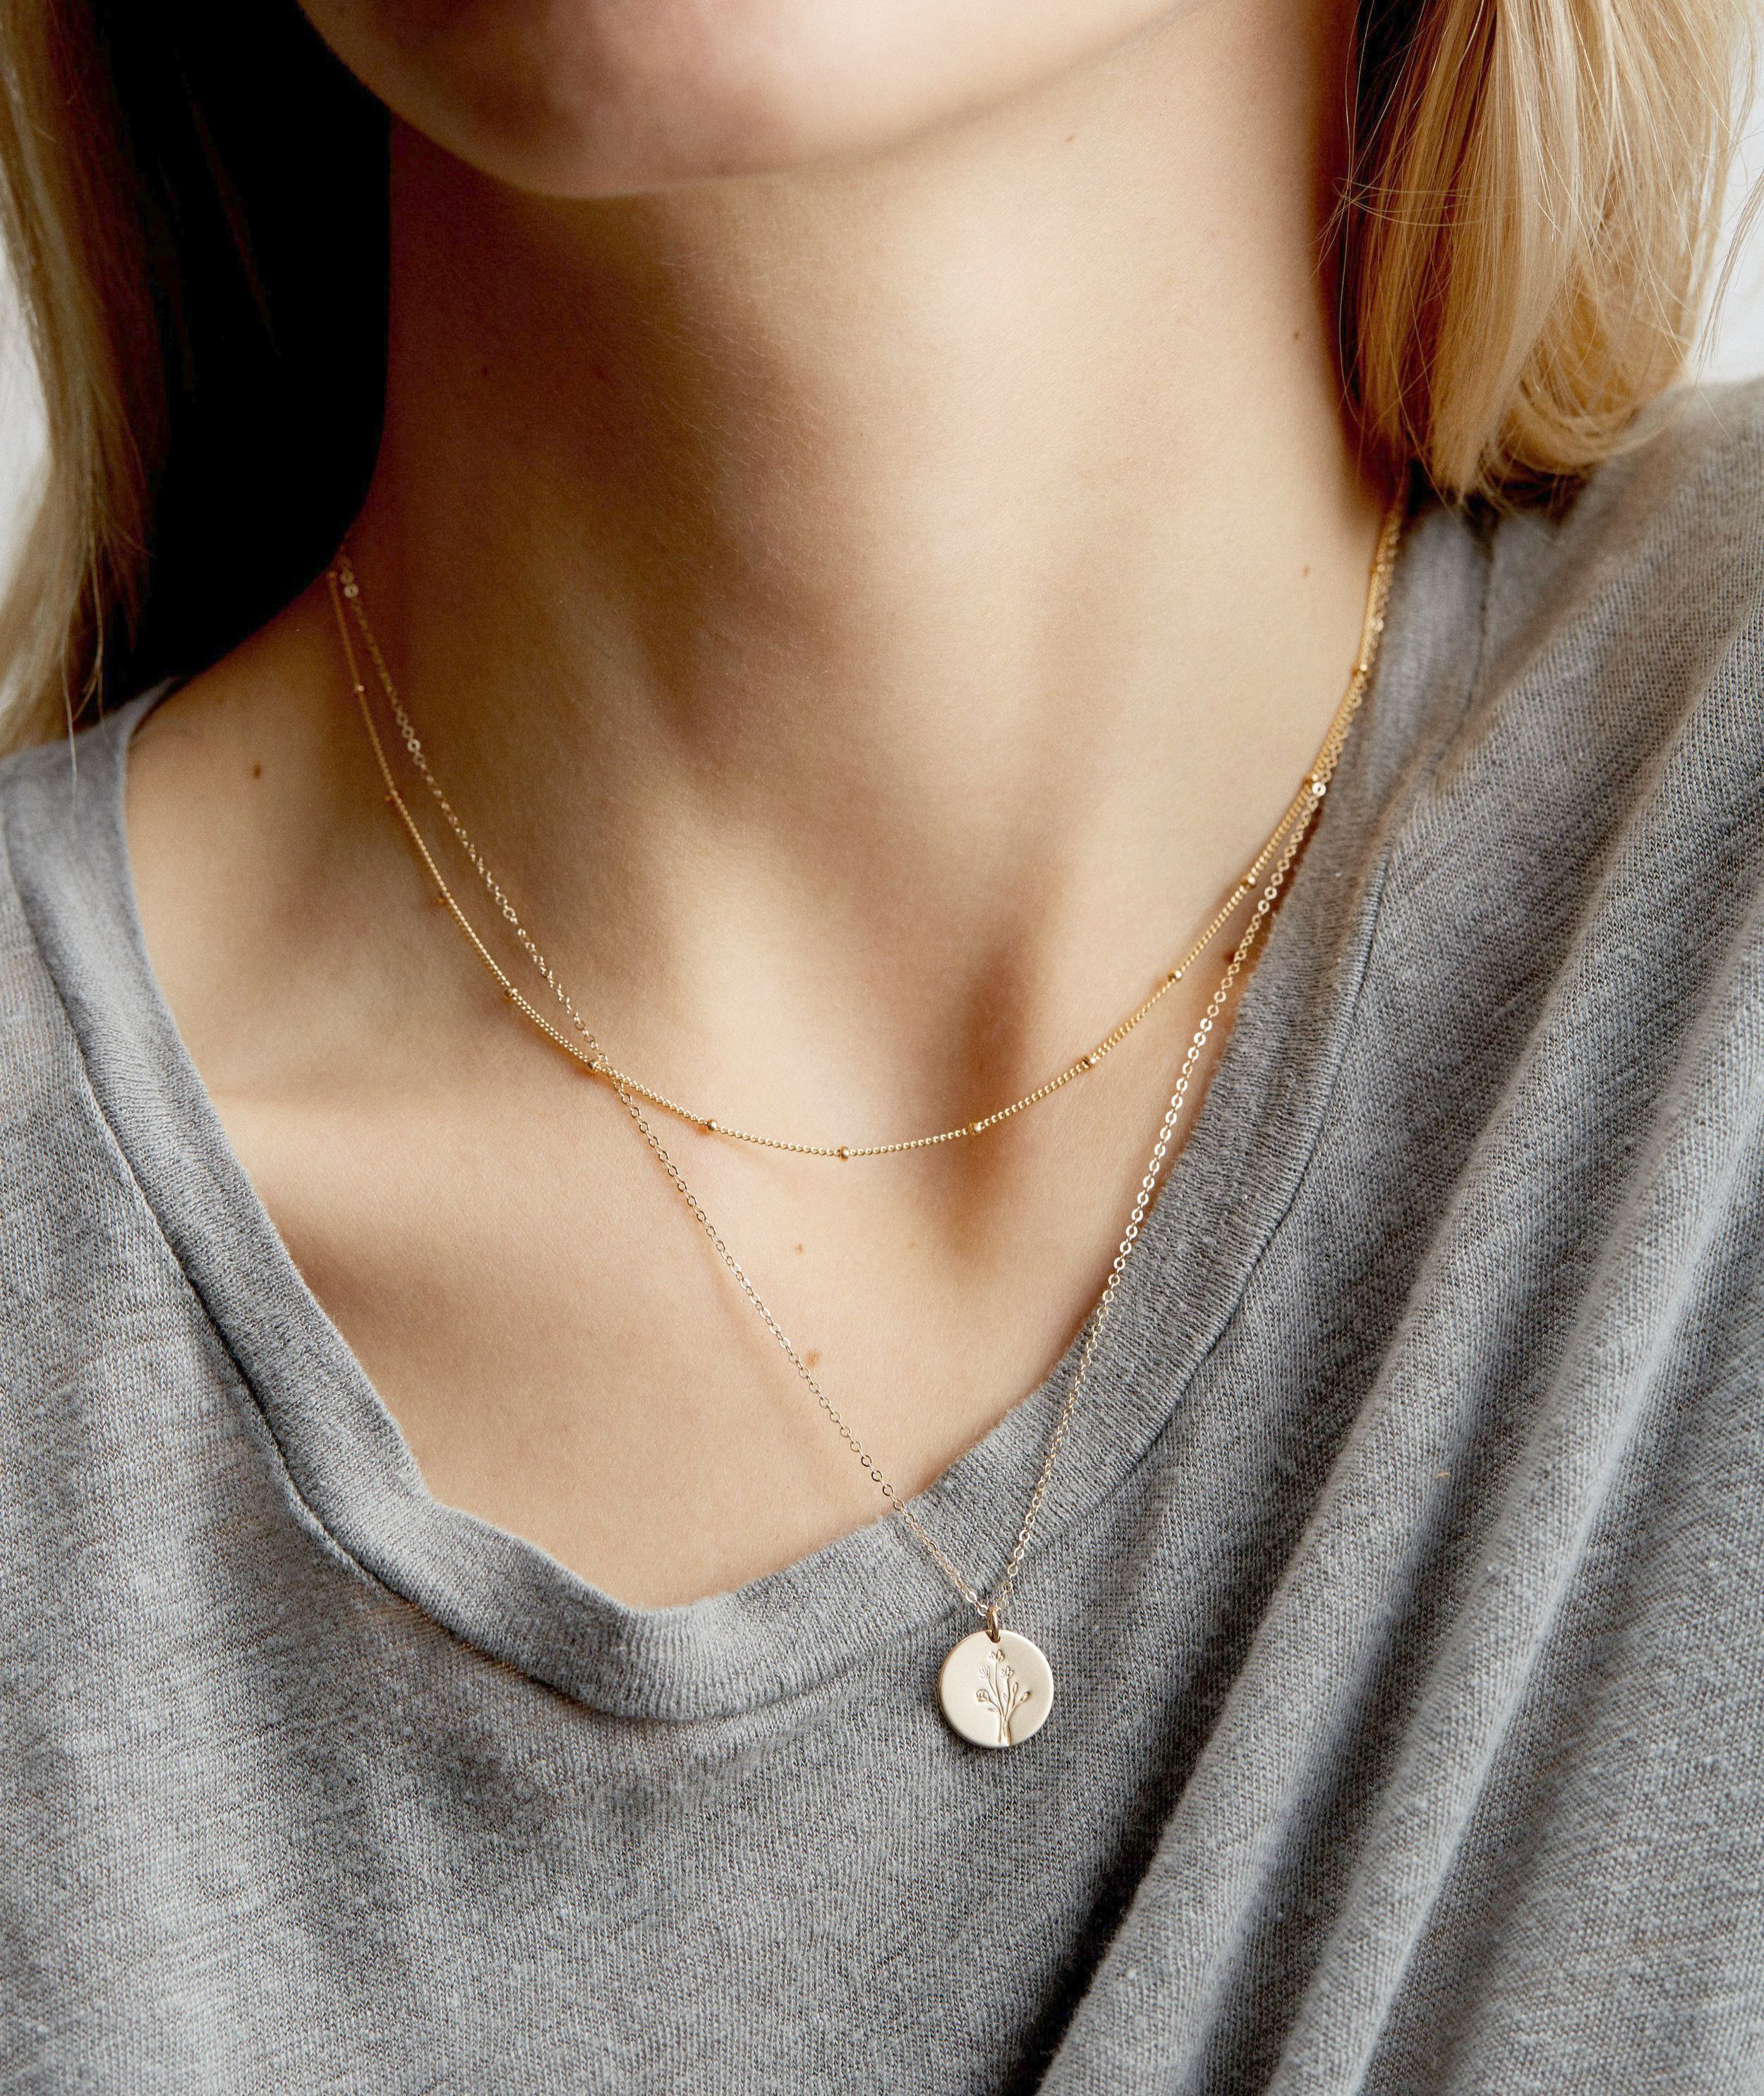 Rose Gold Necklace On Brown Skin Unless Jewellery Exchange Nj Concerning Jewellery Logos Images Beneath Jewell Layered Necklace Set Valentines Necklace Jewelry